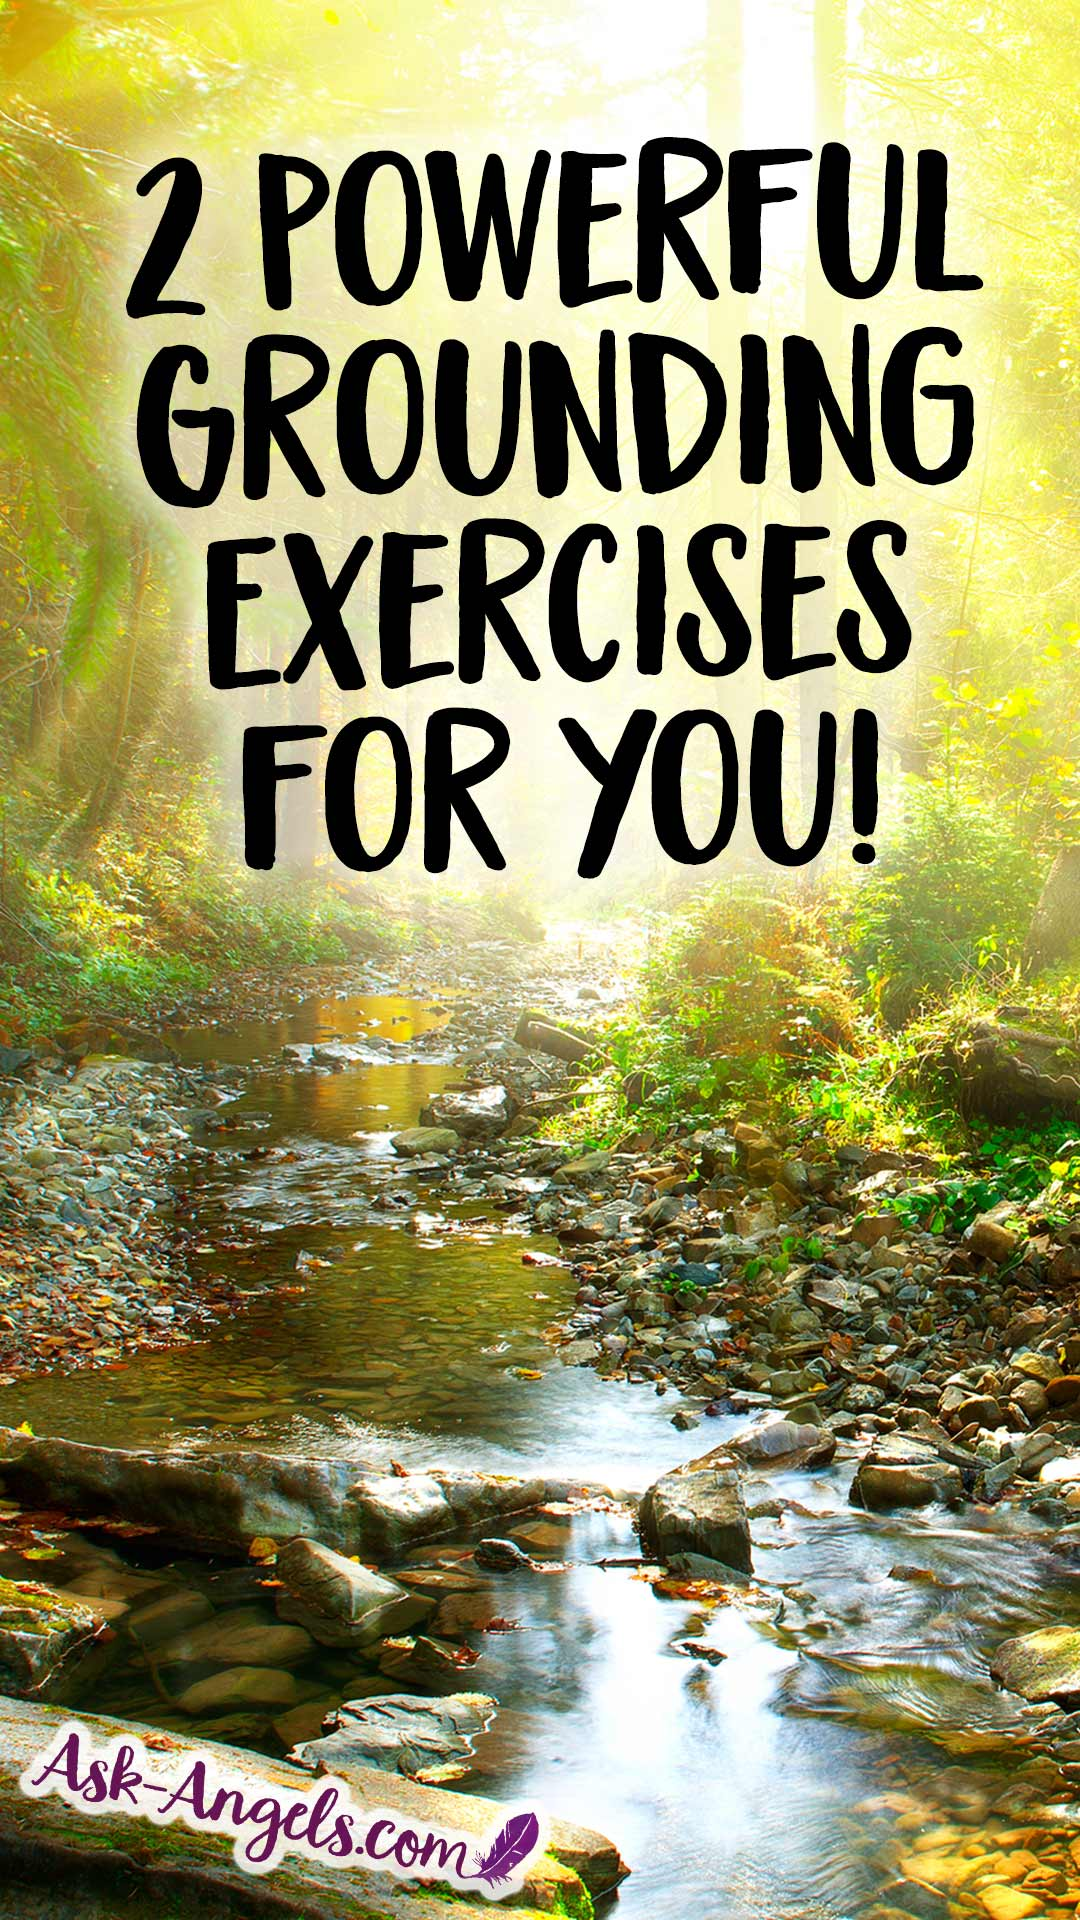 2 Powerful Grounding Exercises for you! Grounding the New Energies and Higher Light!